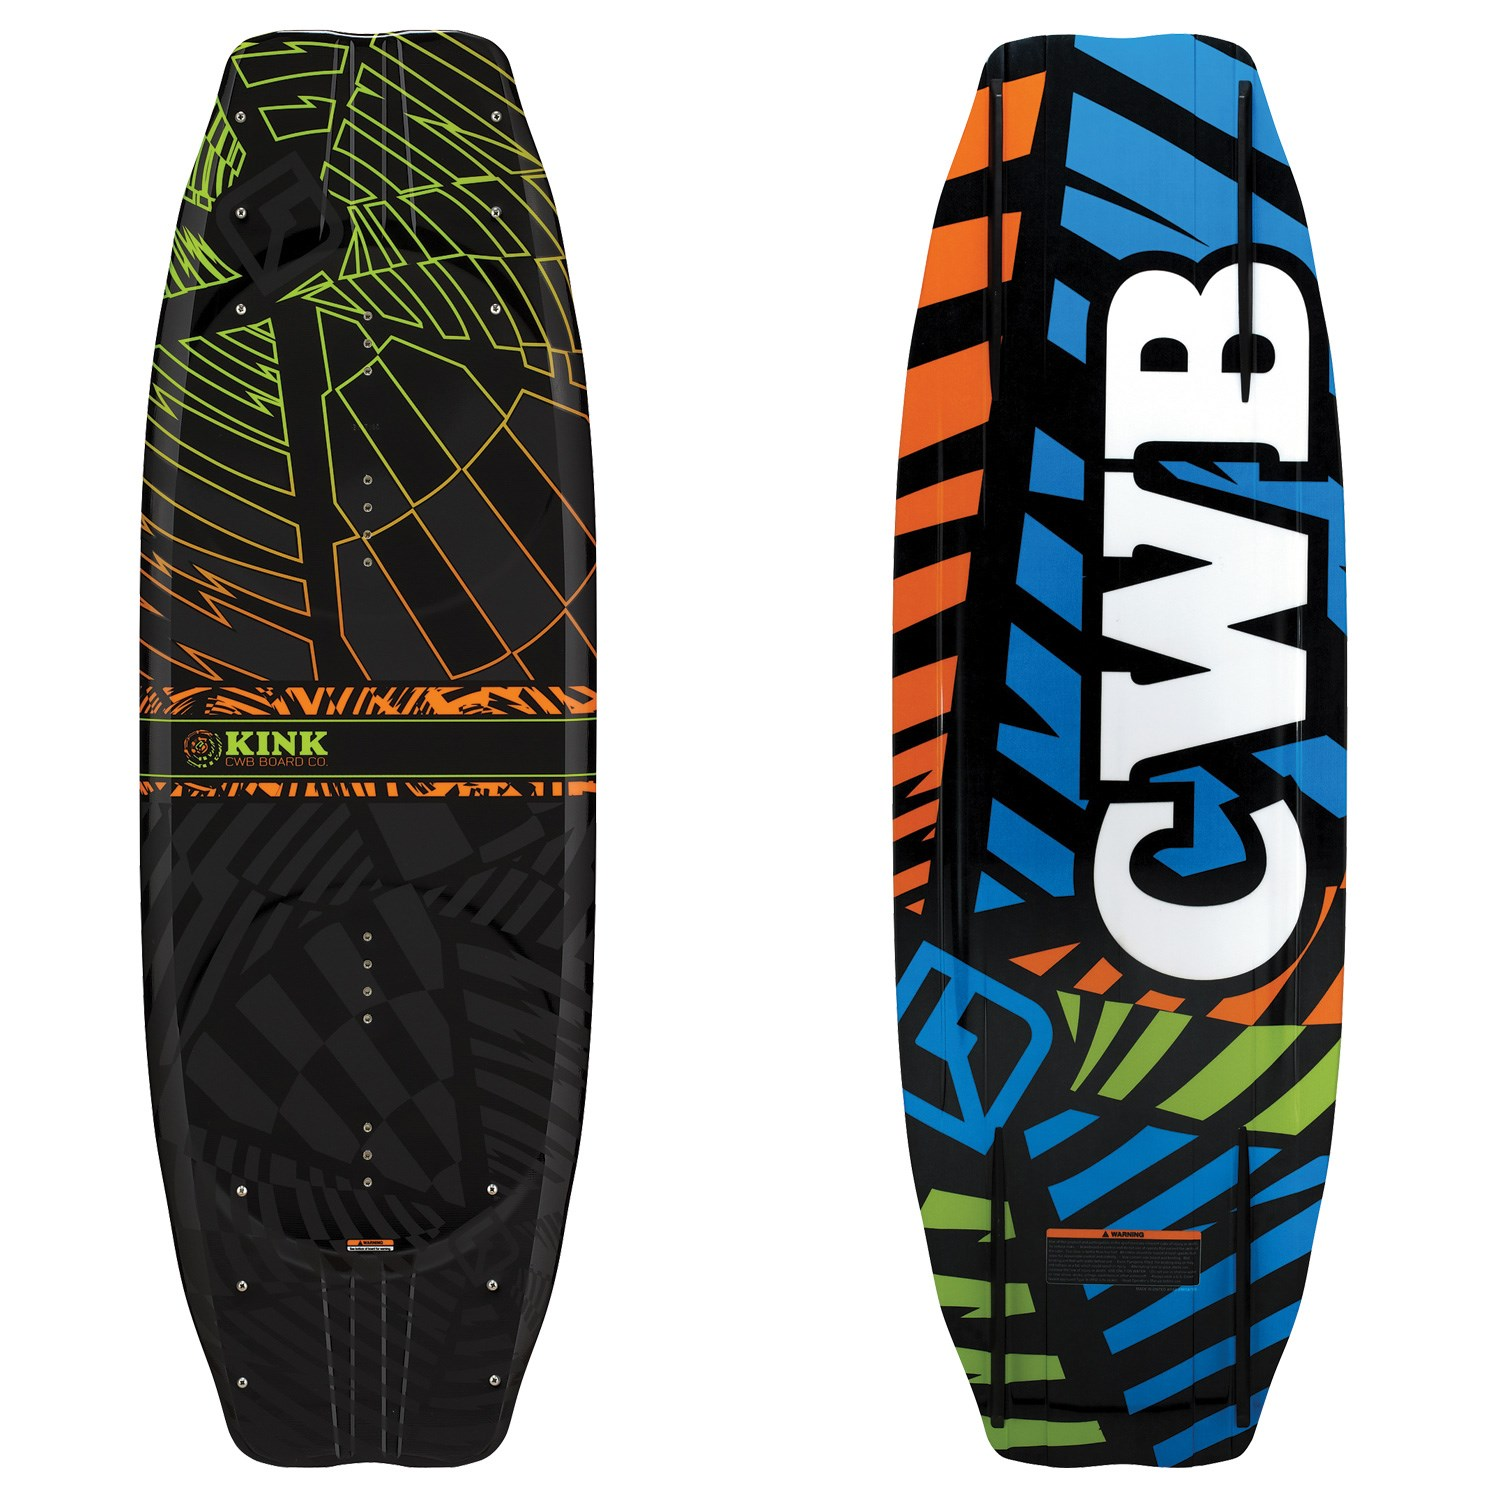 Cwb Kink Wakeboard Vapor Bindings 2011 Evo Outlet